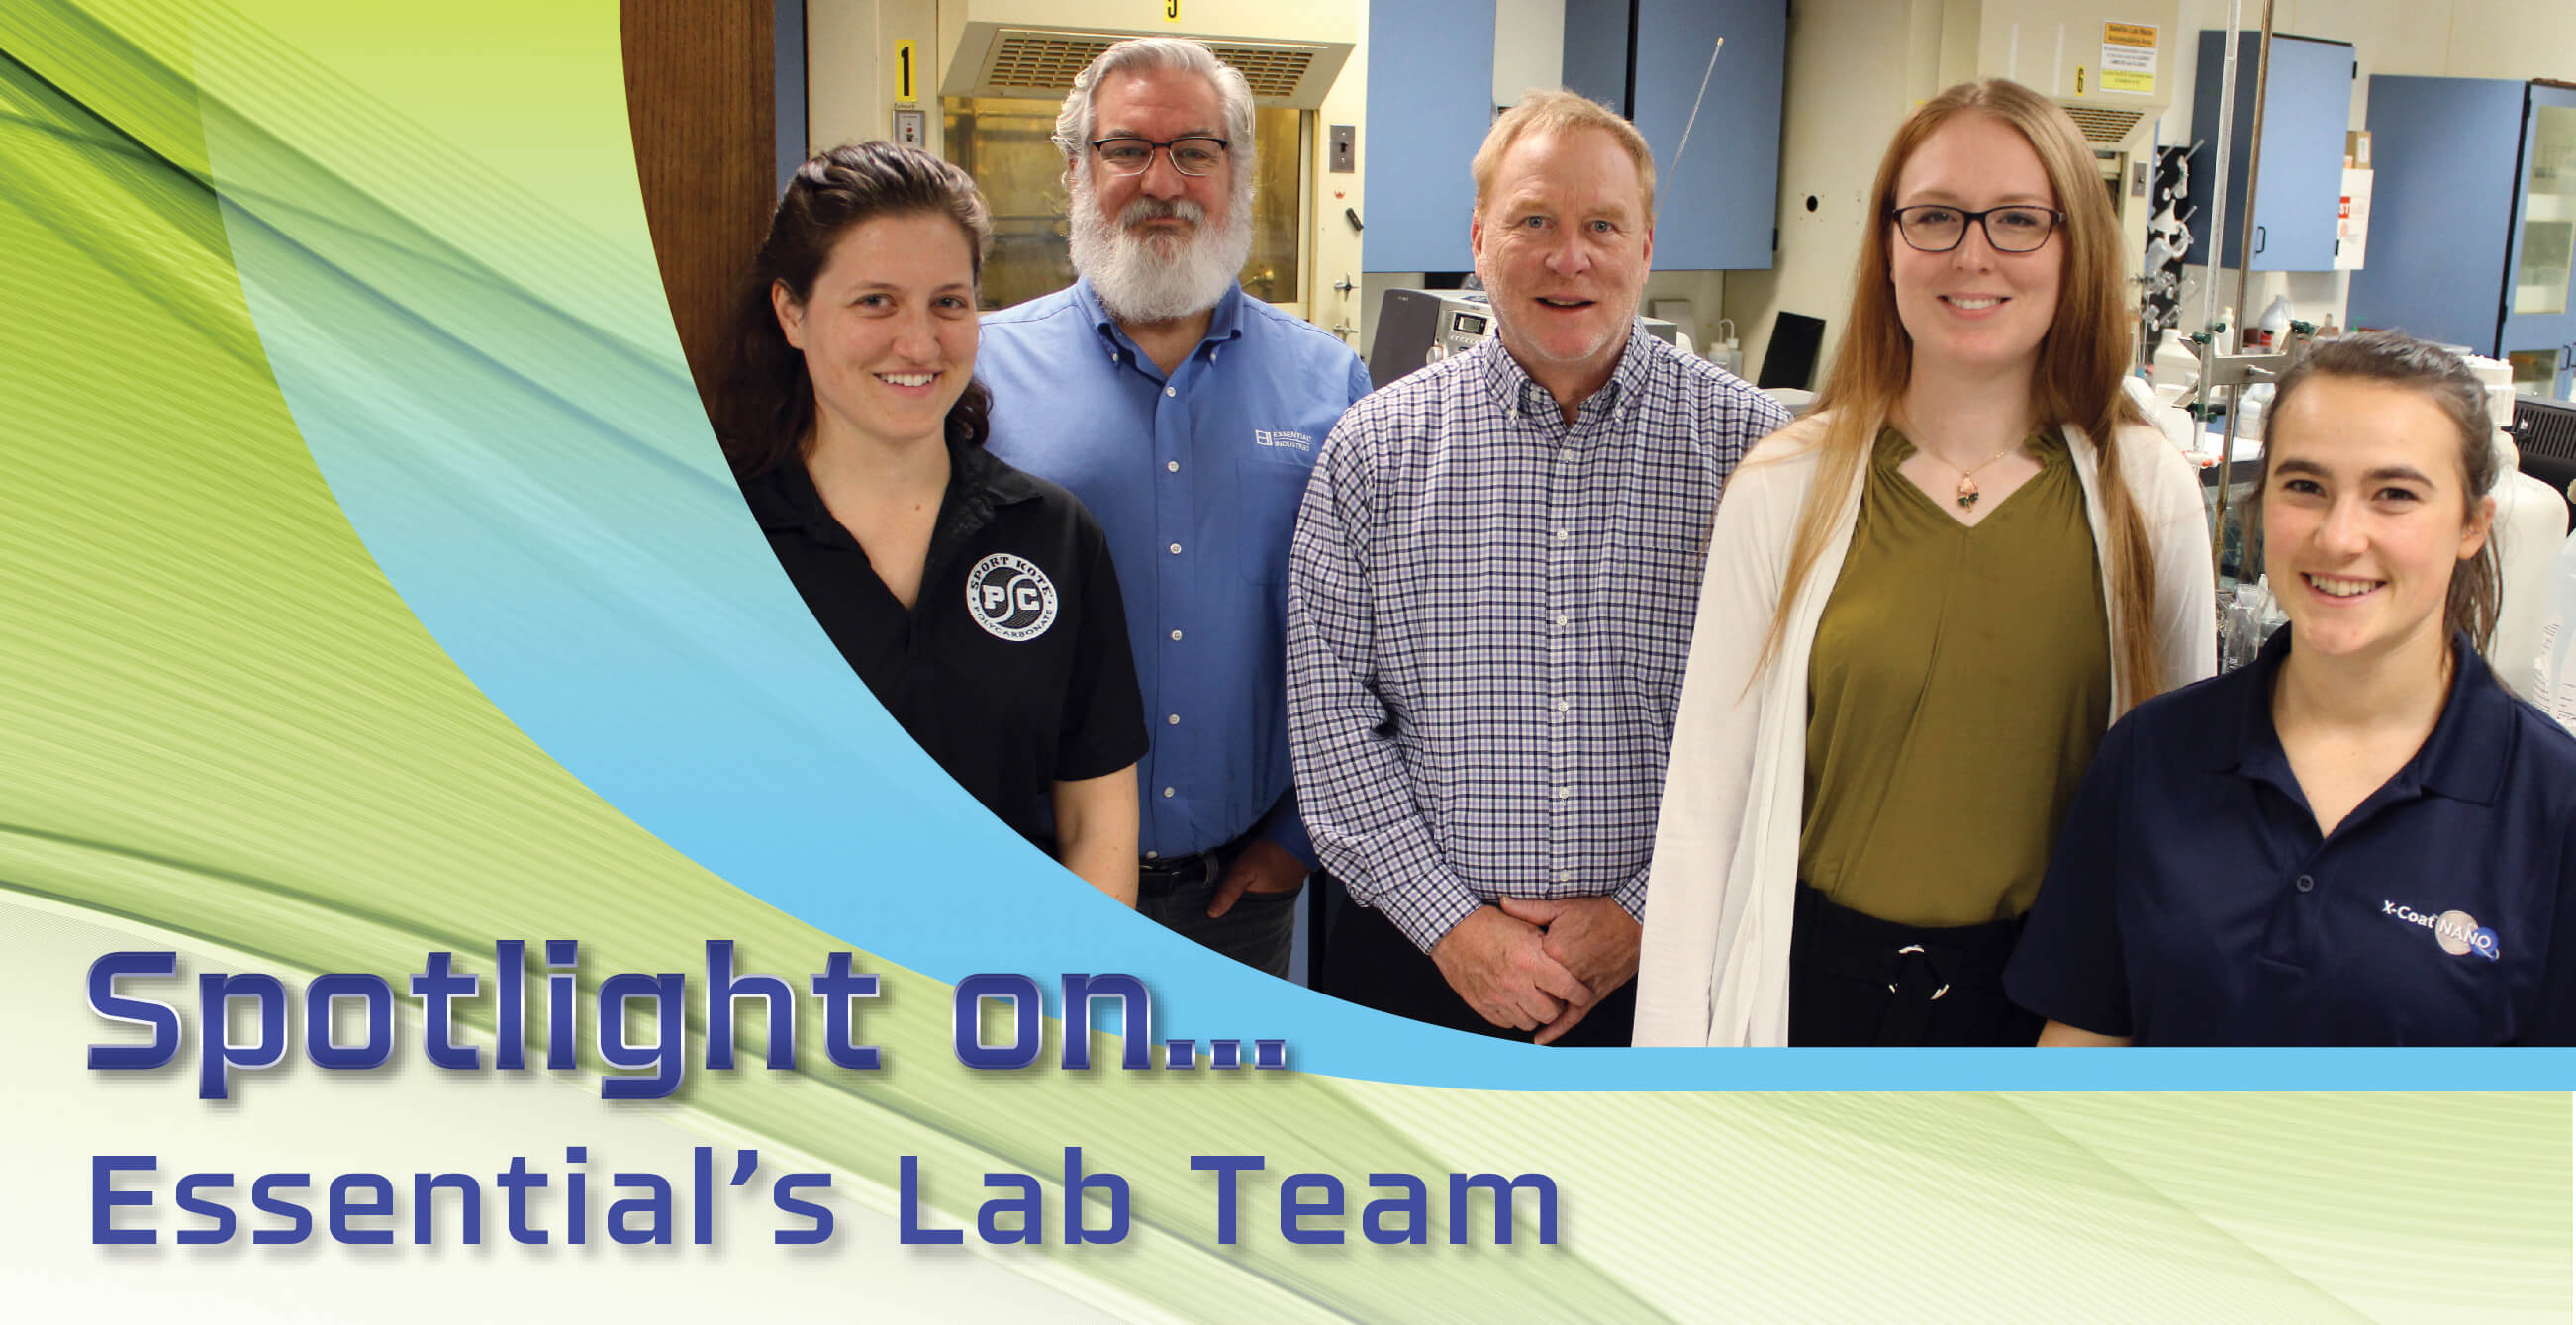 Spotlight on Essential Lab Team